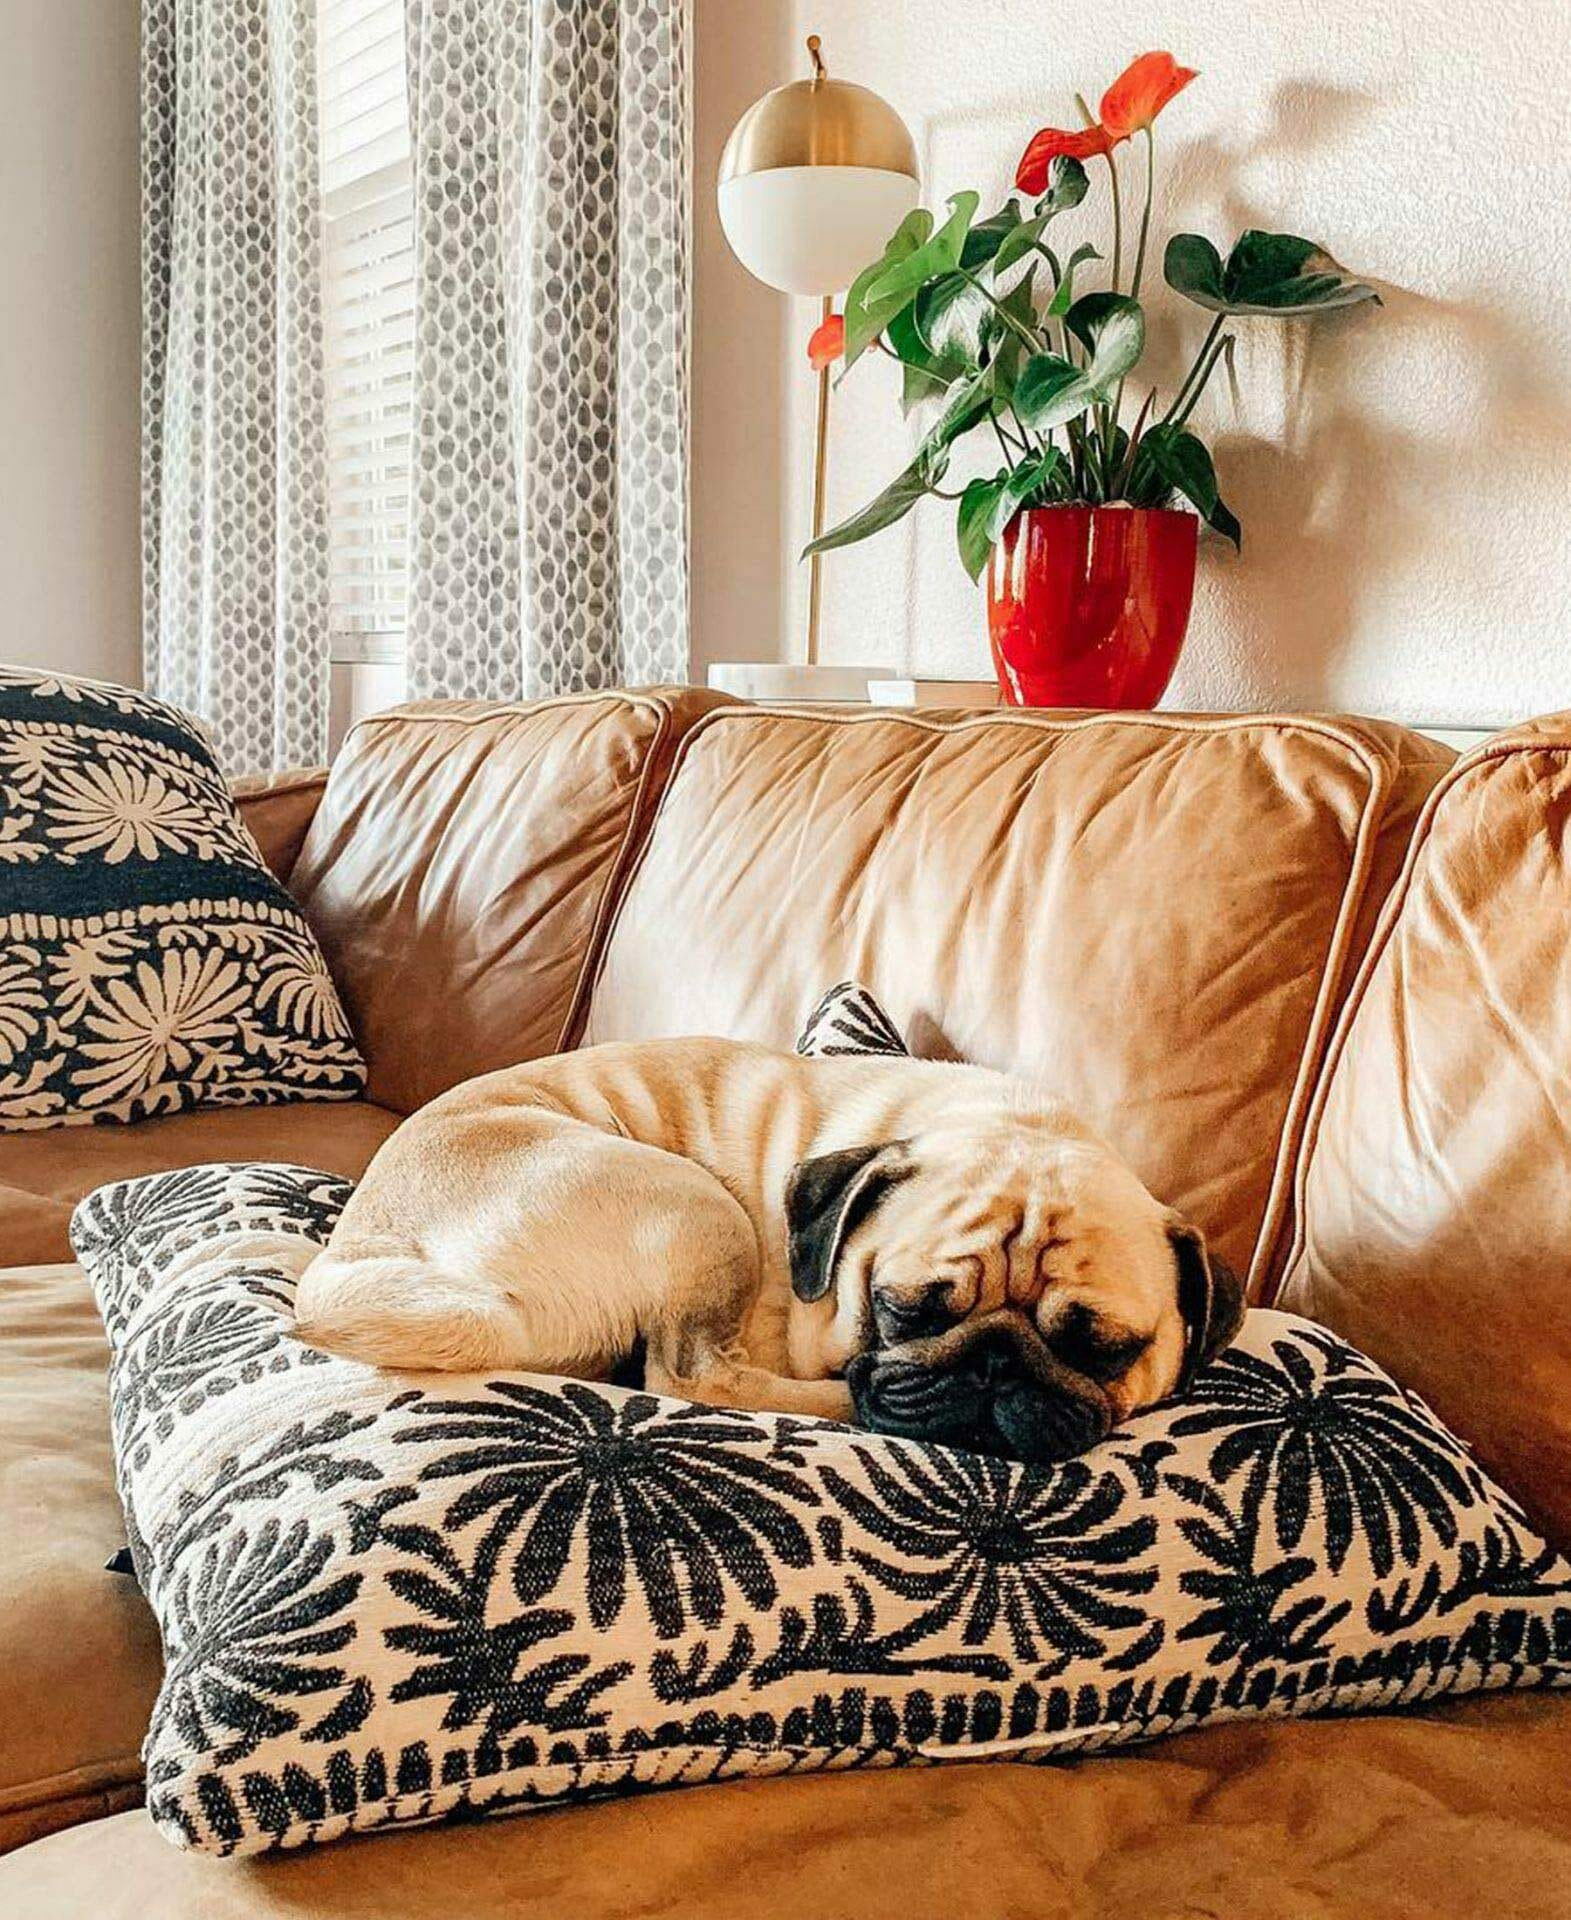 Pug dog relaxes on an Article leather sofa from @teeshirtbabe